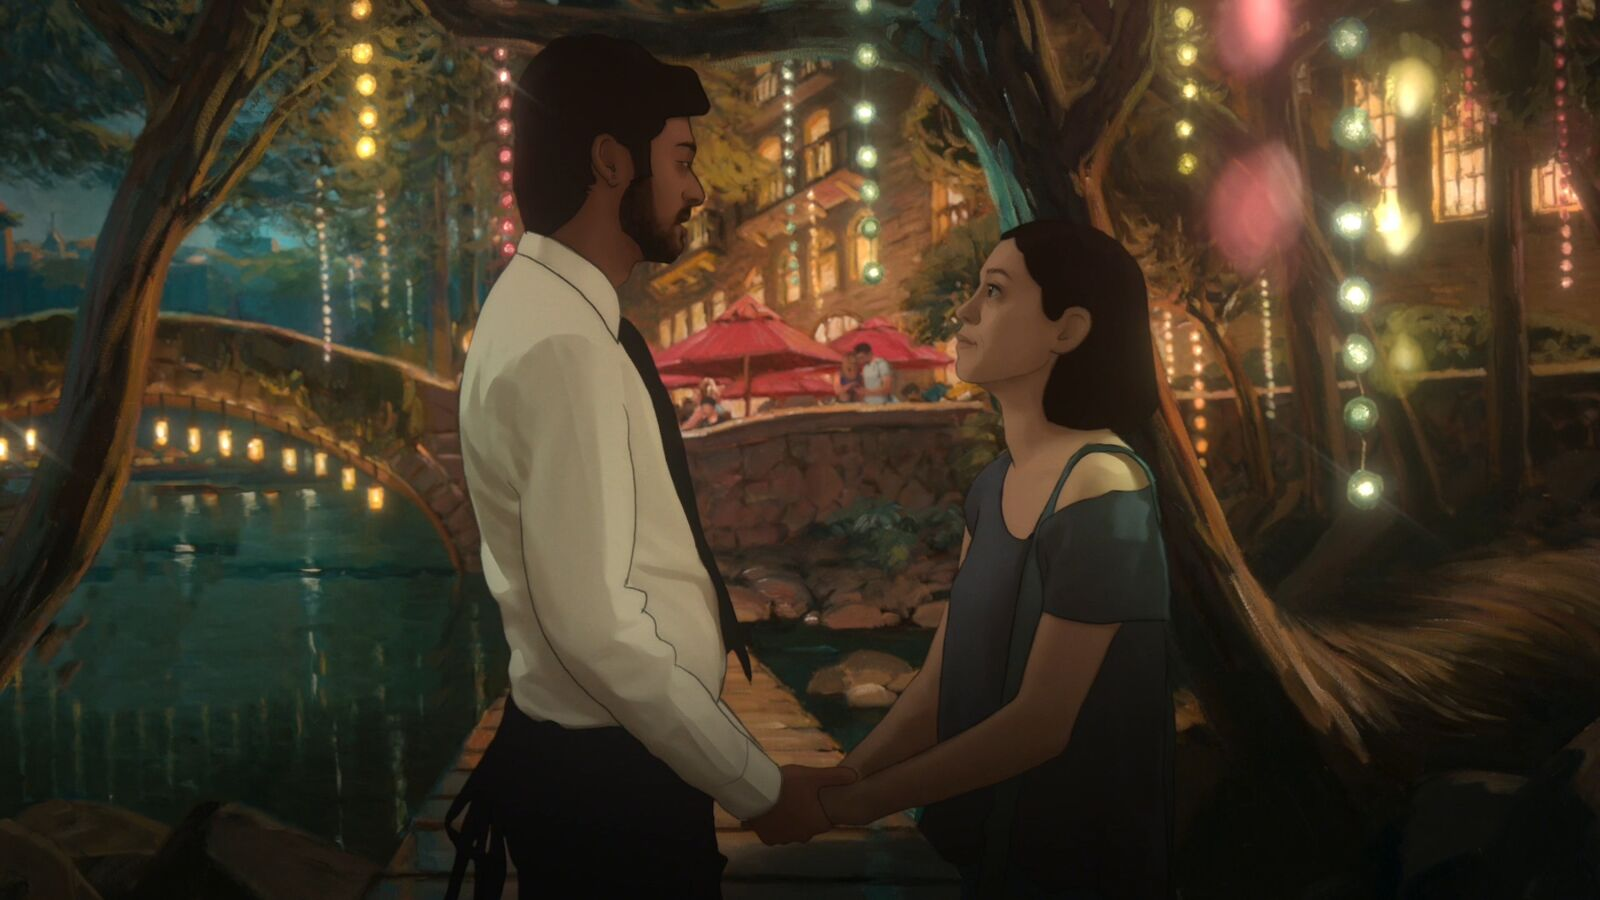 Undone season 1, episode 5 recap: Alone in This (You Have Me)